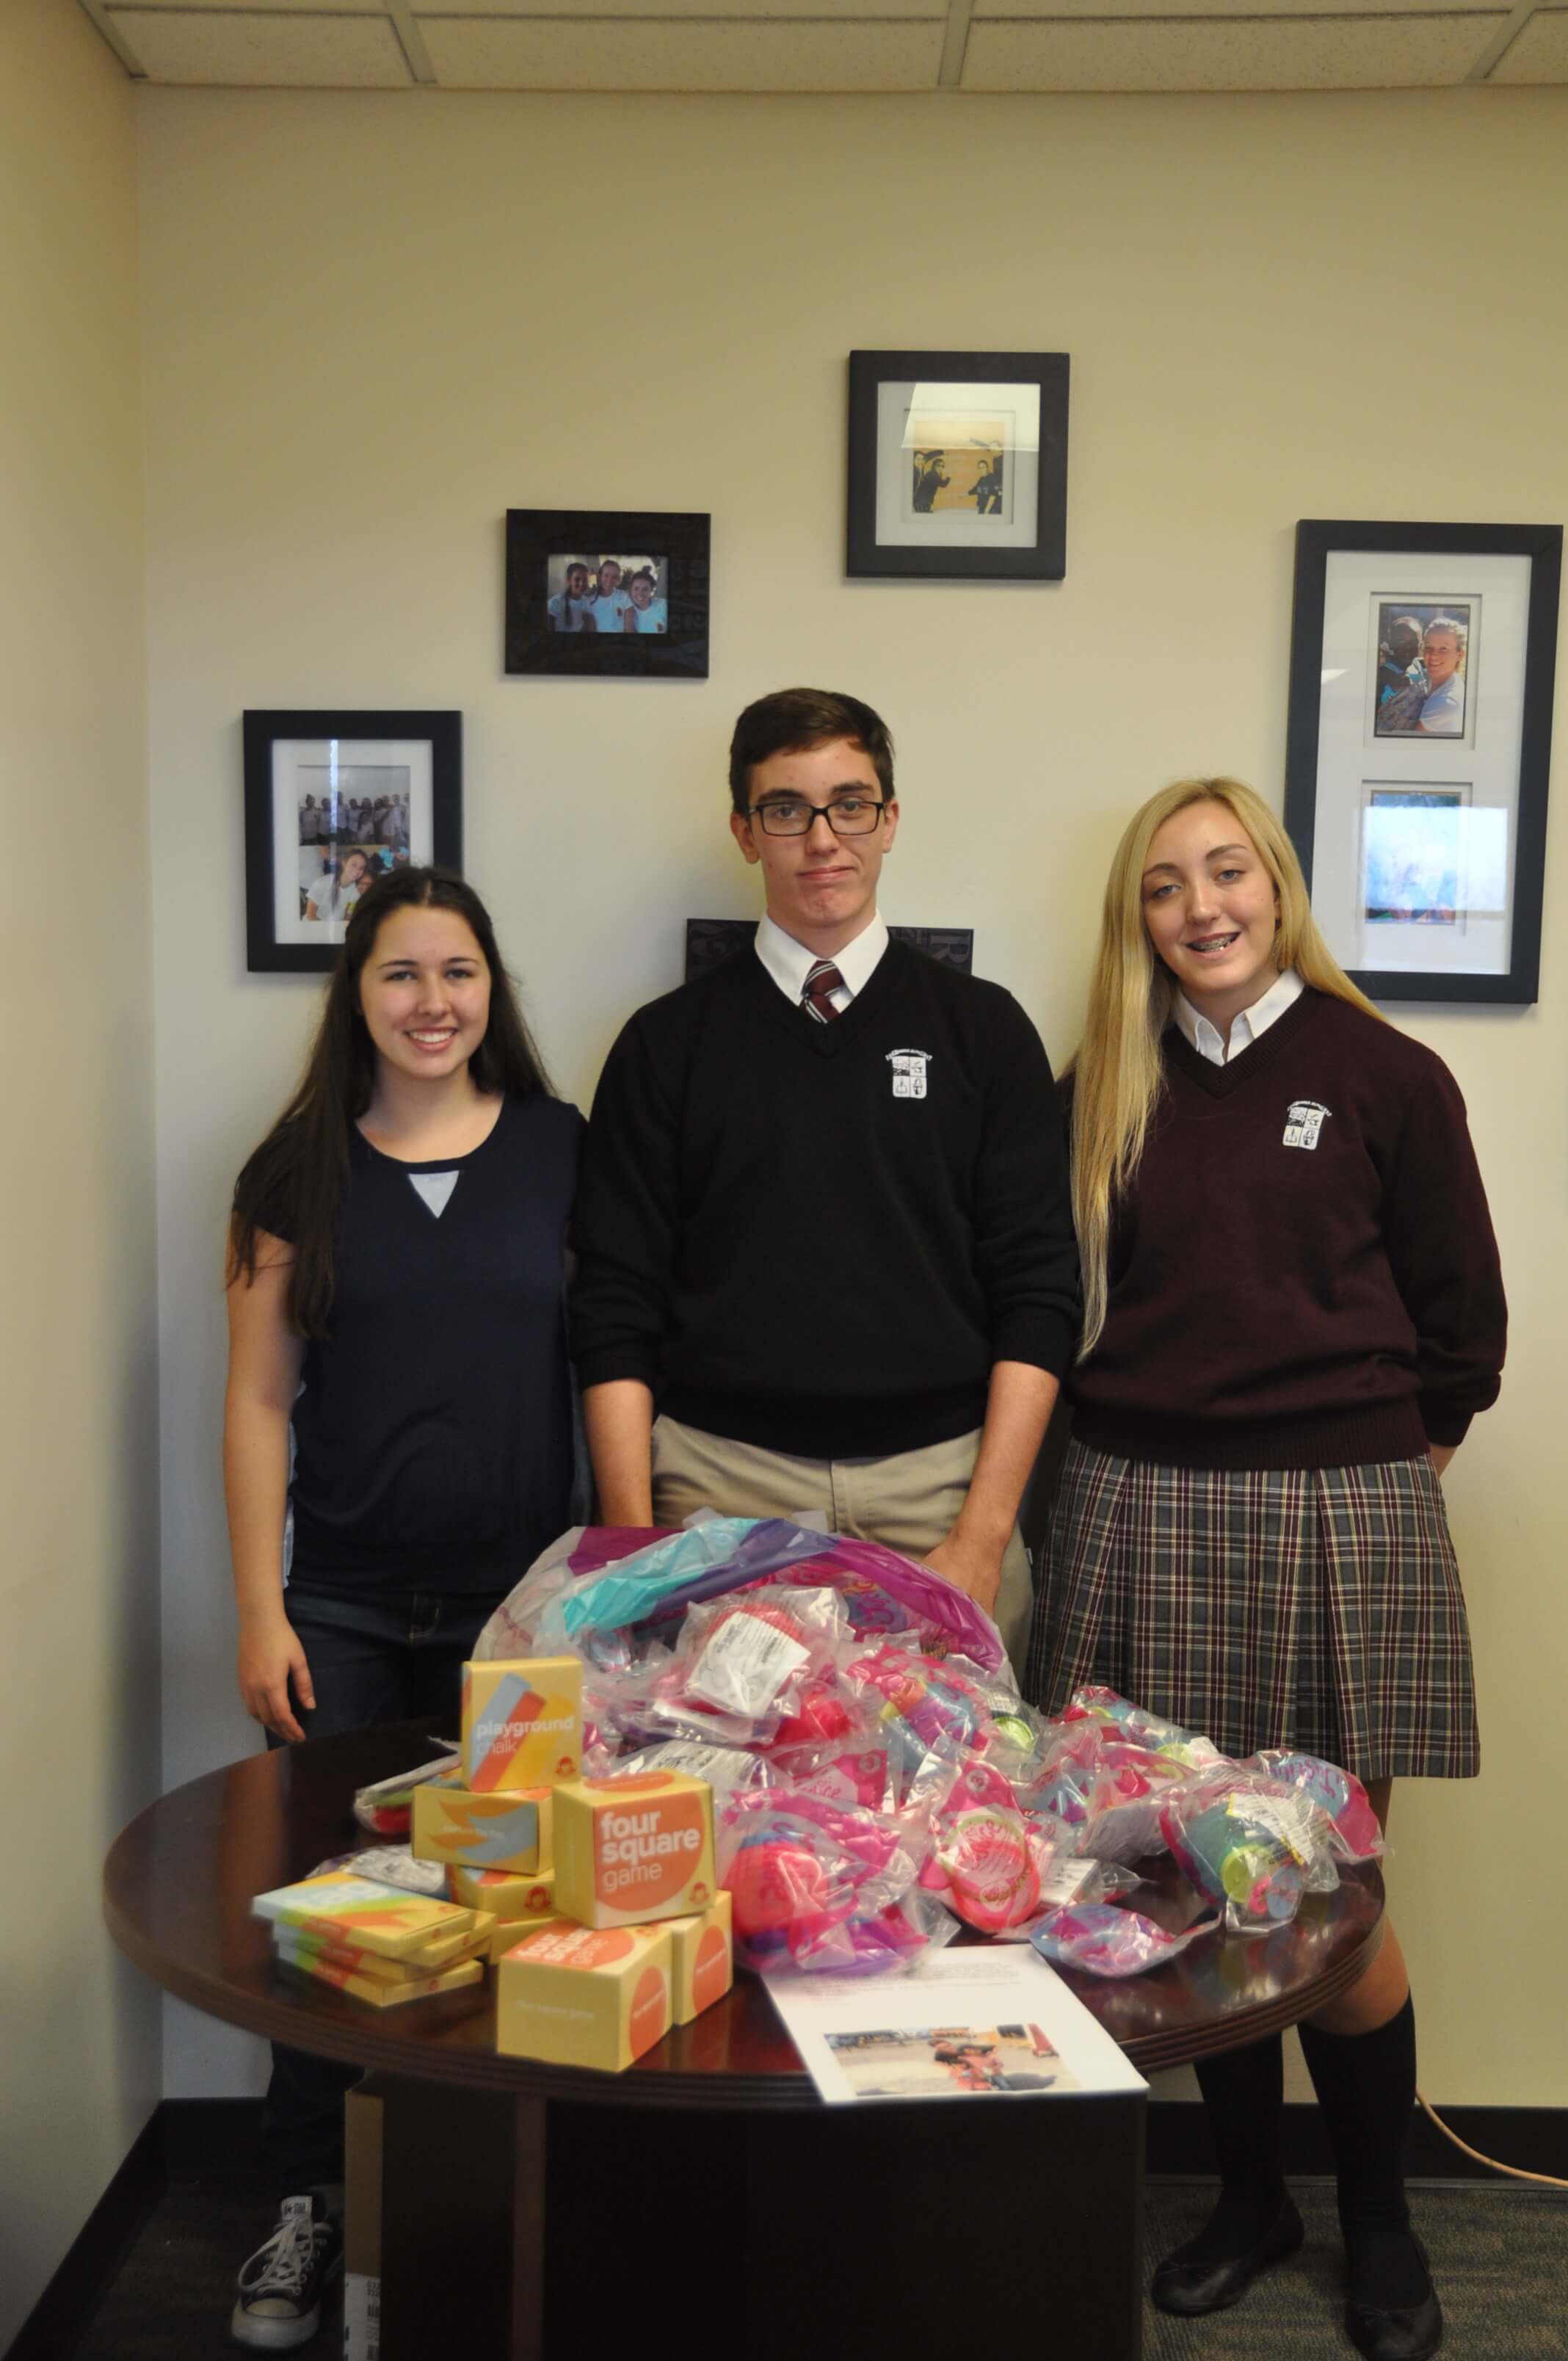 Kathryn Steel, Jeffrey and Madeline Thewes with some of their toy donations for children in Guatemala